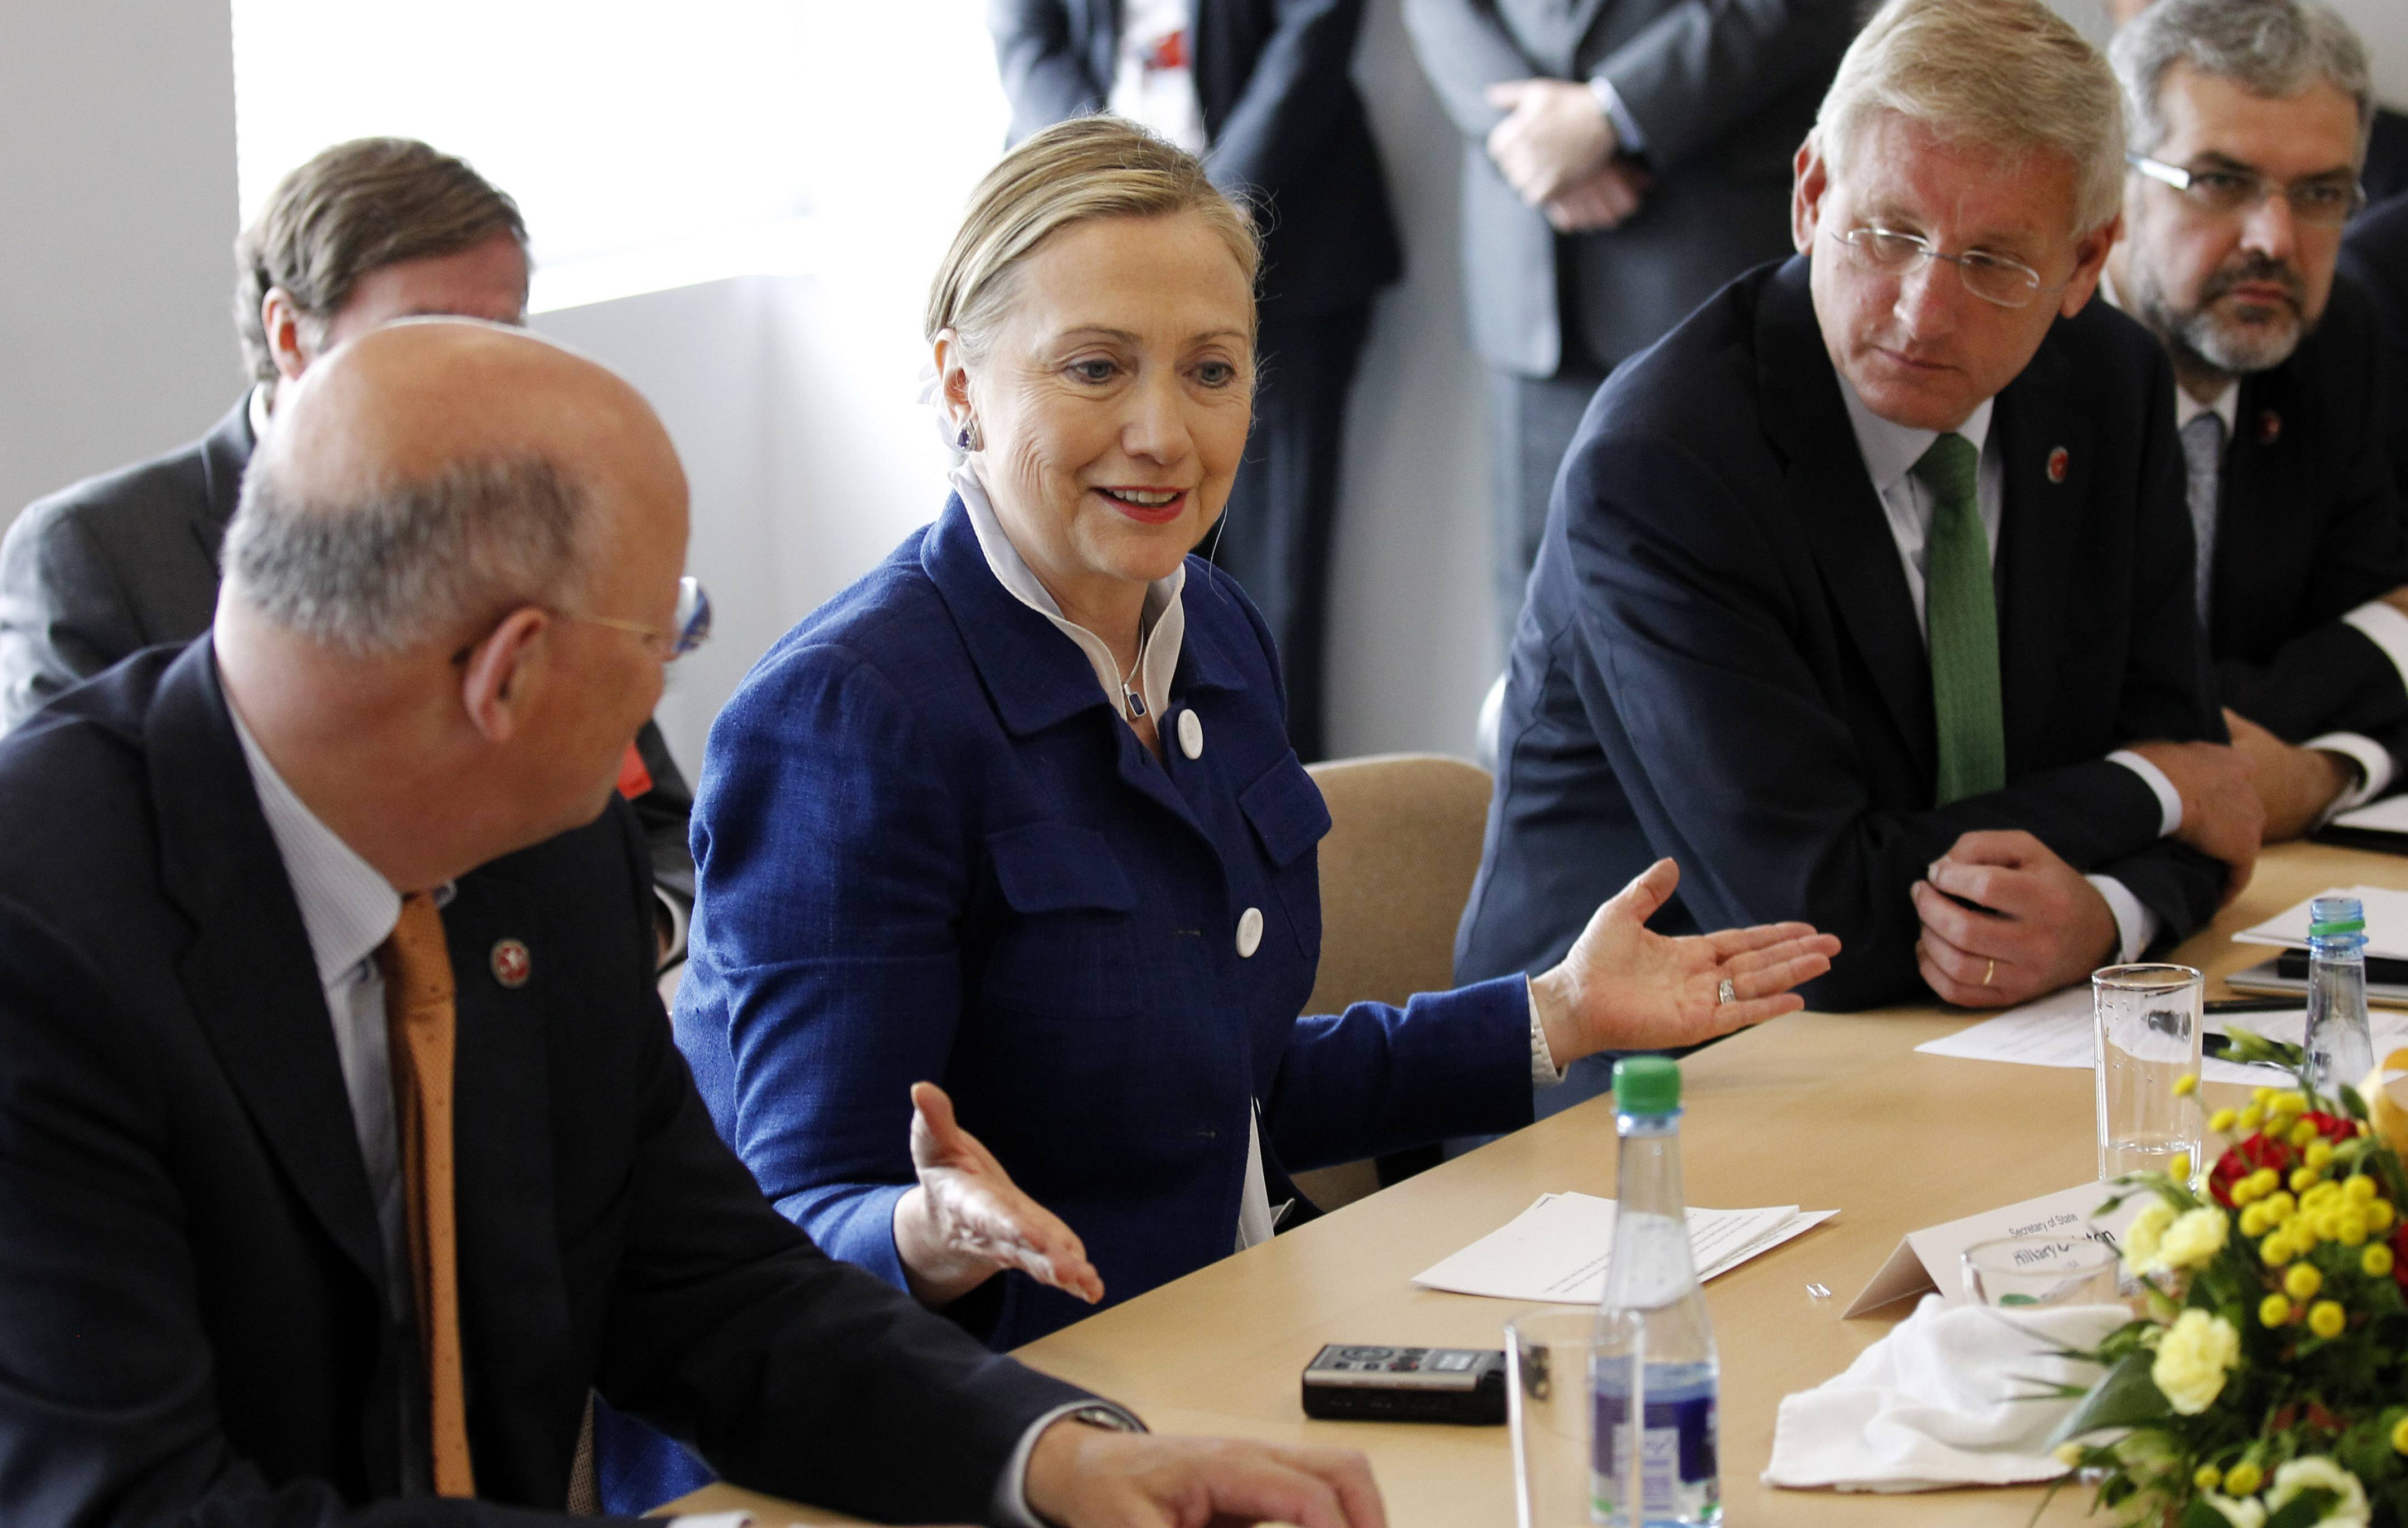 U.S. Secretary of State Hillary Rodham Clinton speaks at a meeting of the Lifeline Donor Steering Committee before the Community of Democracies ministerial conference Friday in Vilnius, Lithuania. Clinton is in Lithuania to attend the international democracy conference and commented Friday about reports on Syria, saying Assad's government is running out of time, that it must advance to a serious political process or face increased resistance.